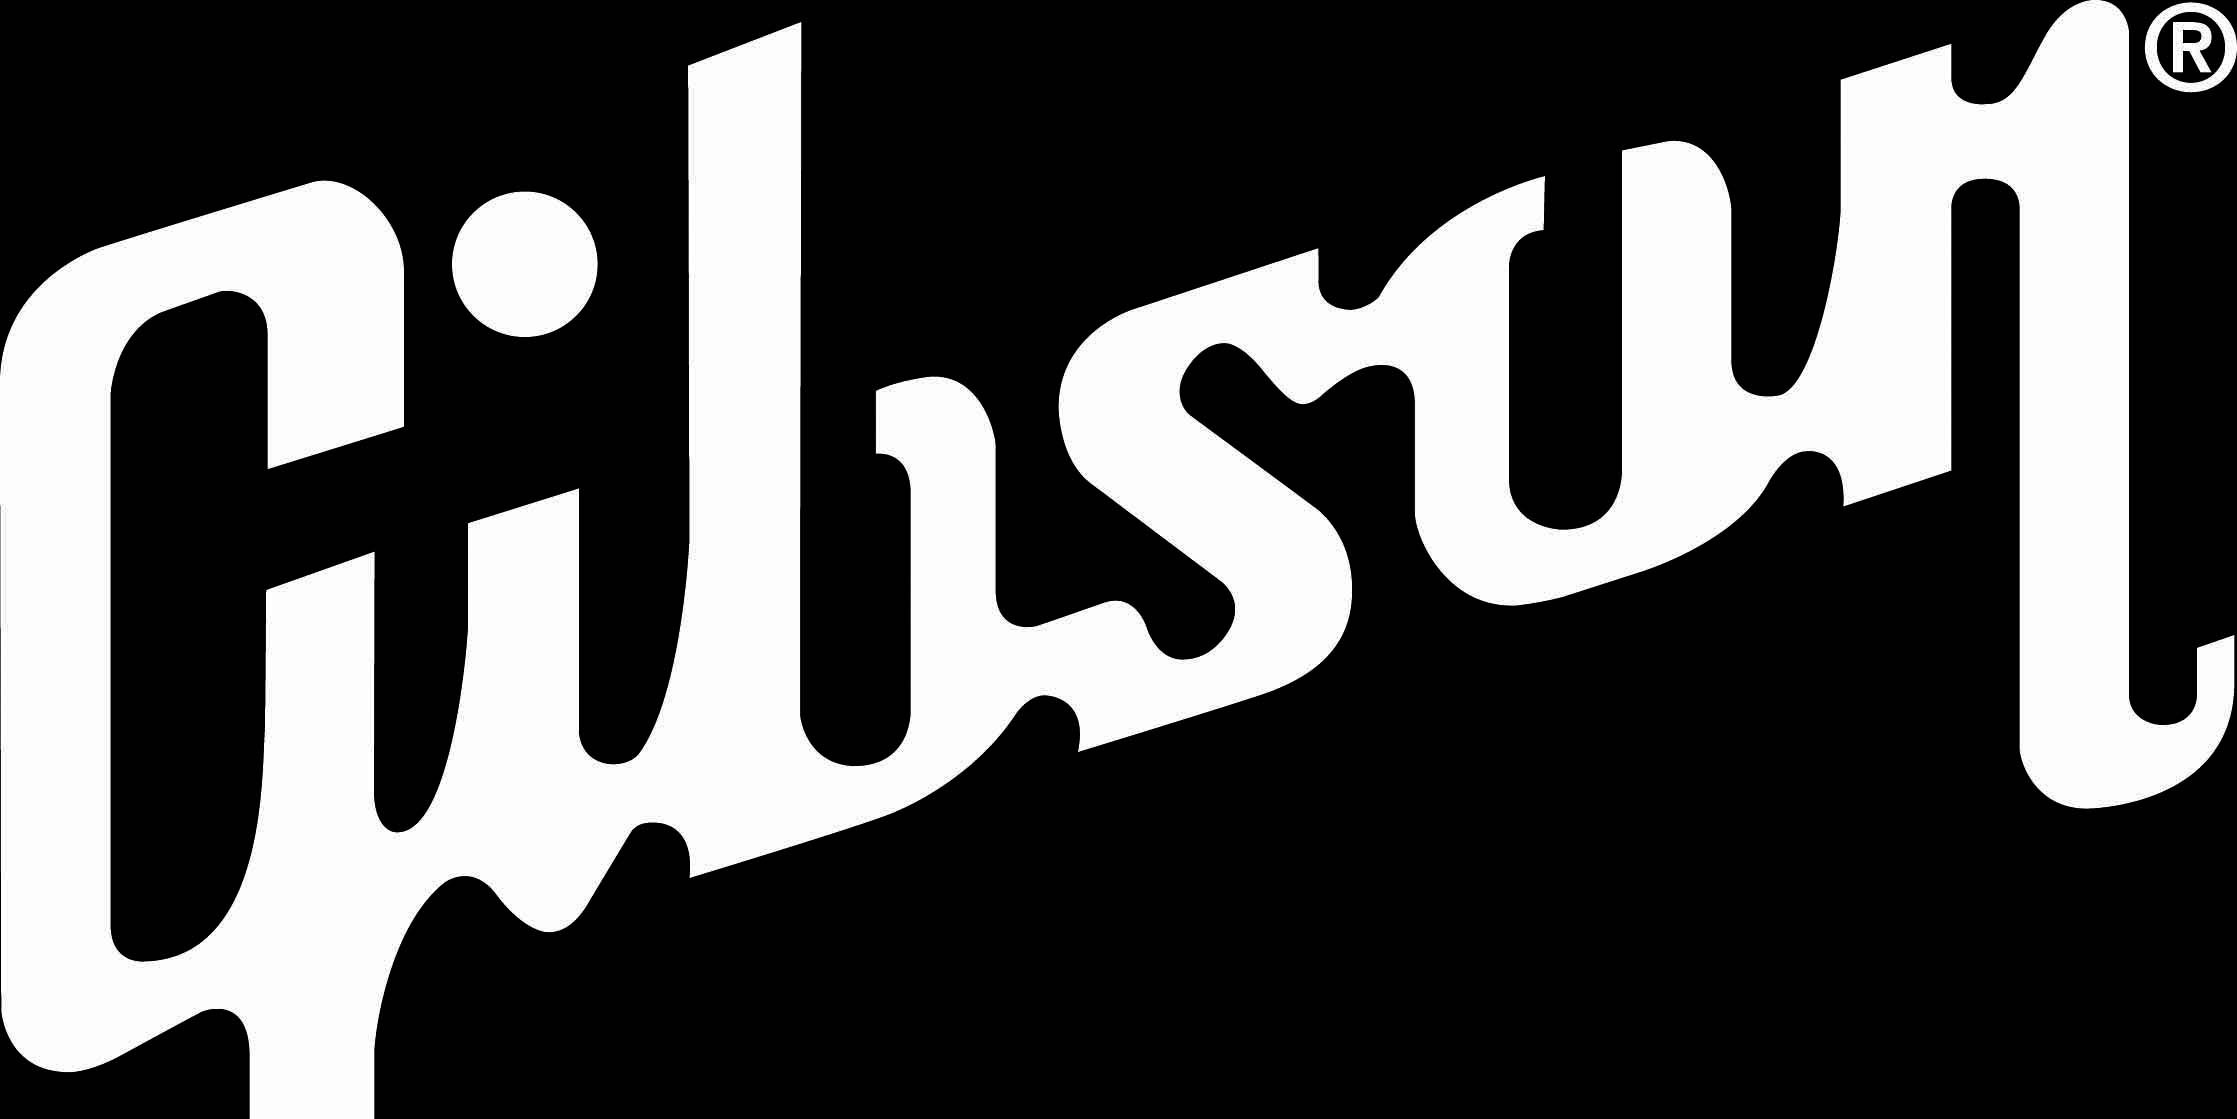 Gibson Guitars potentially facing bankruptcy